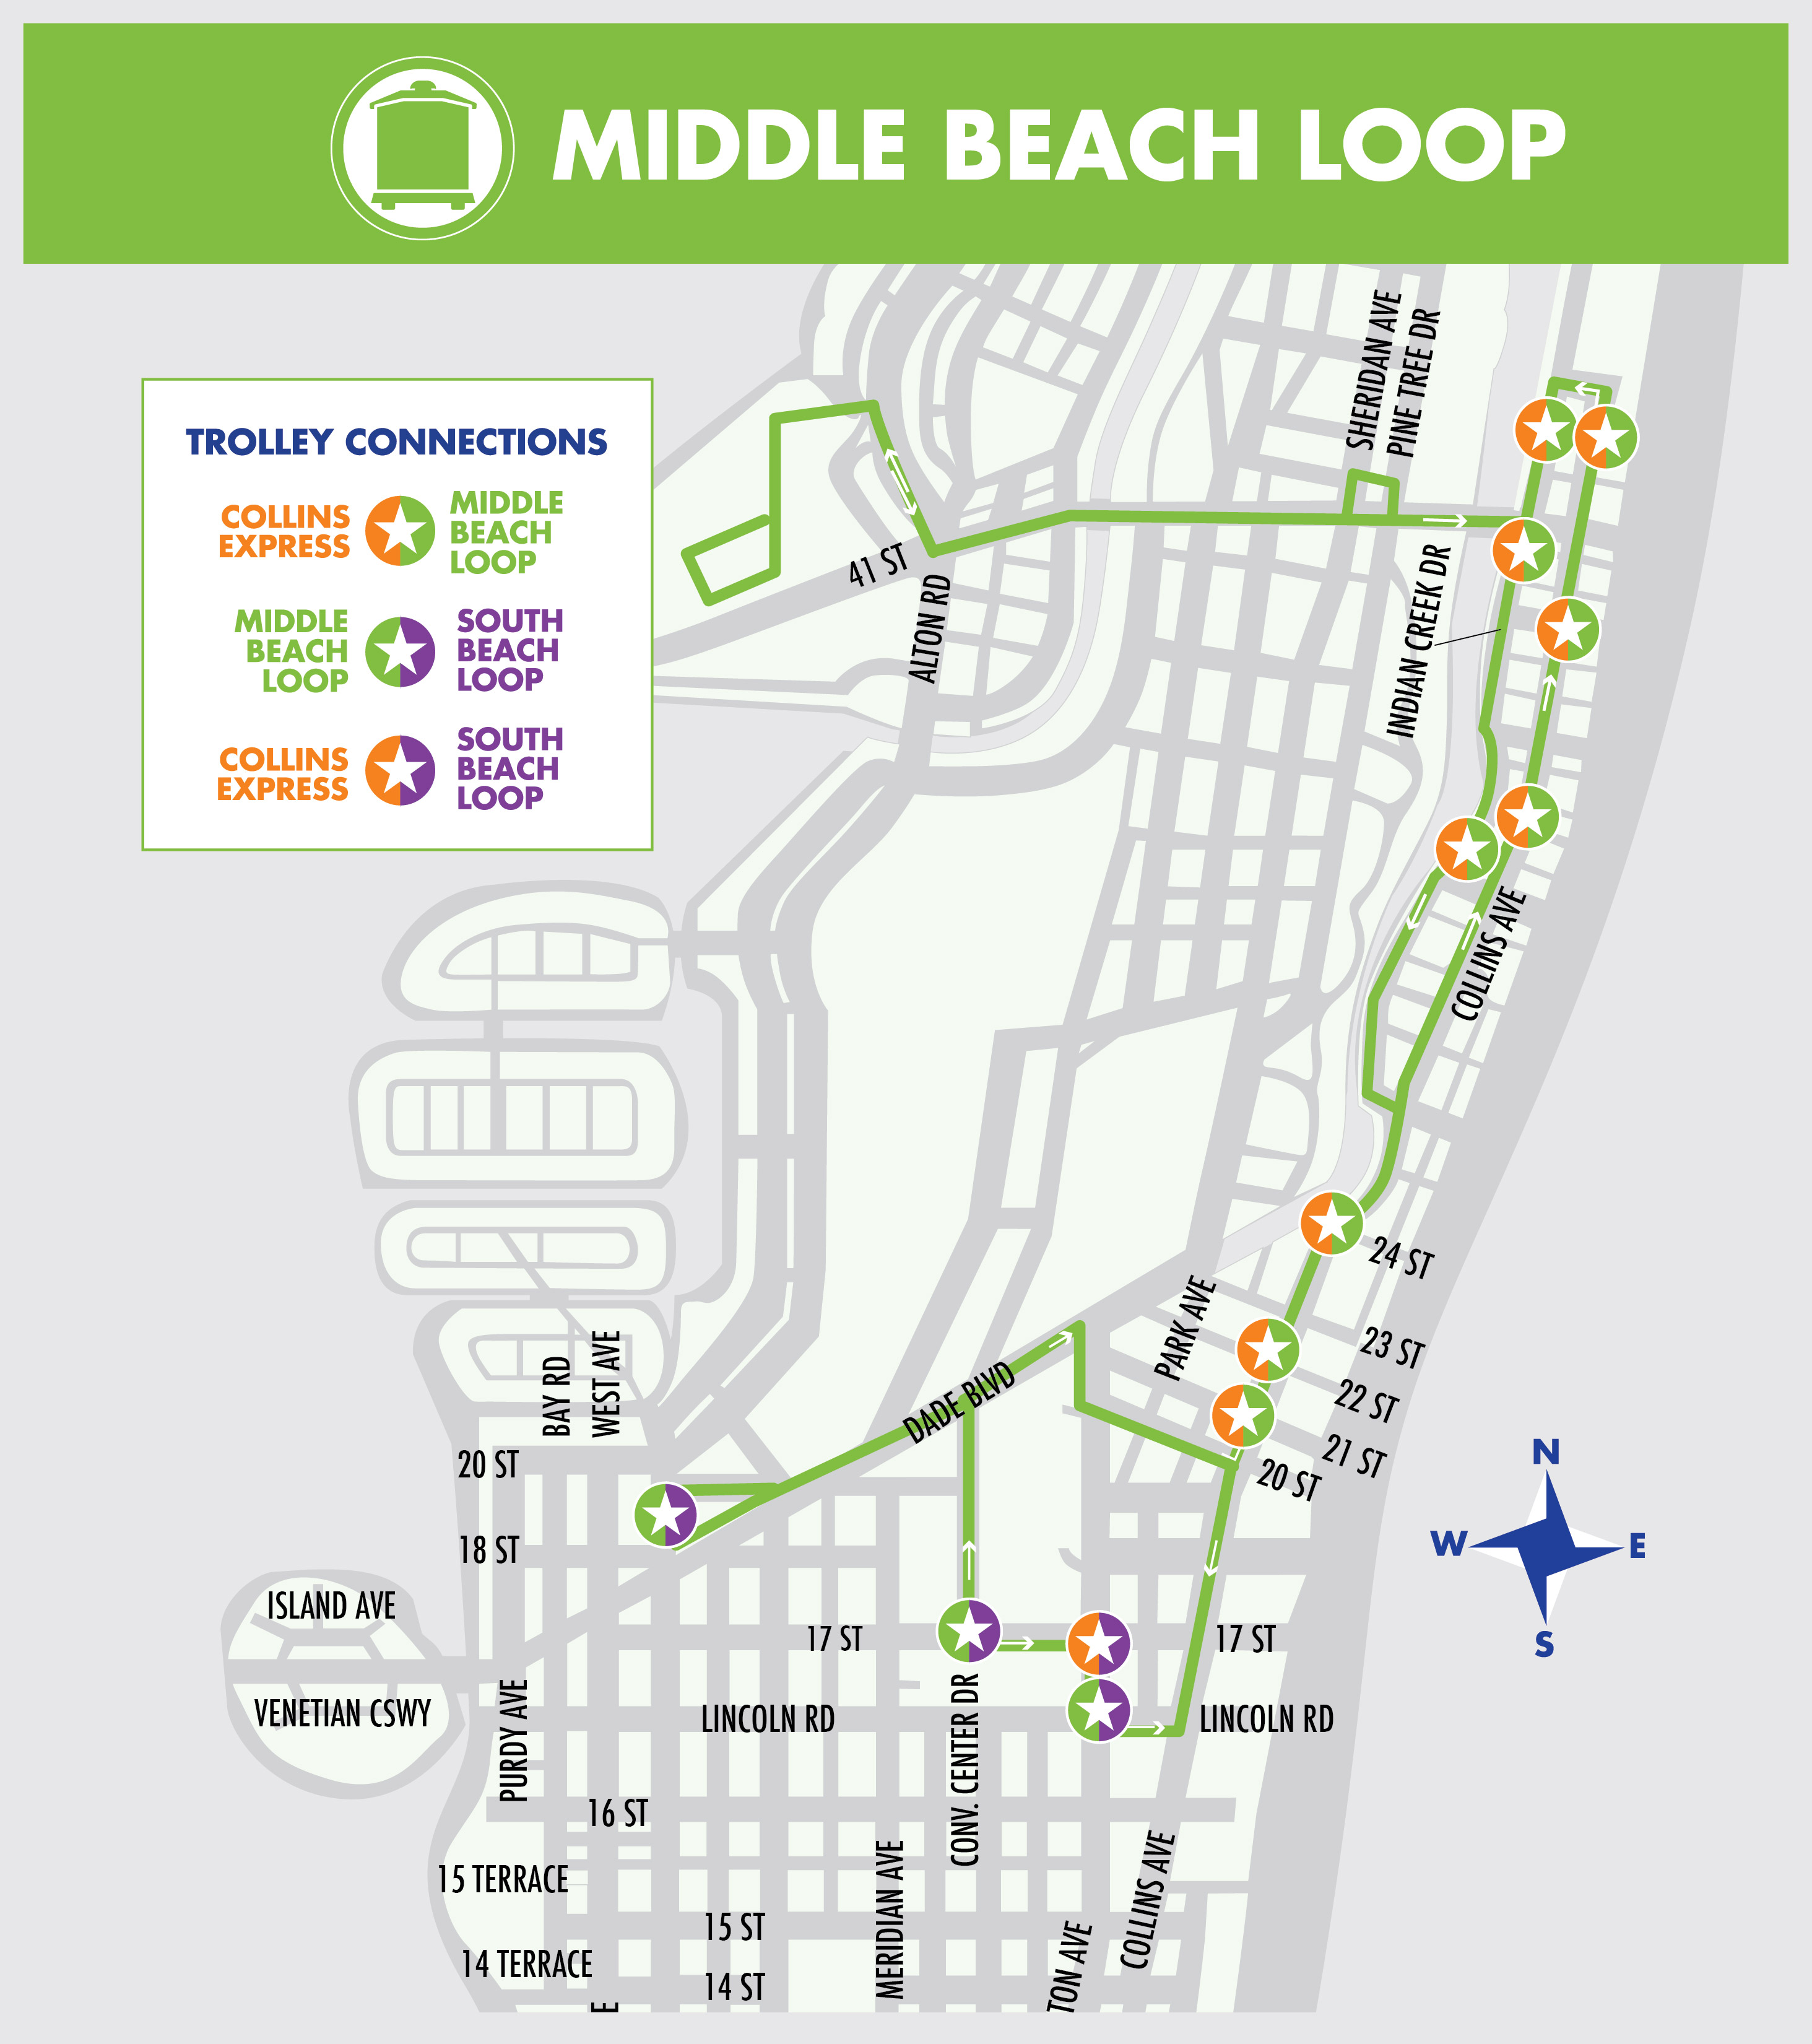 Middle Beach Loop Map